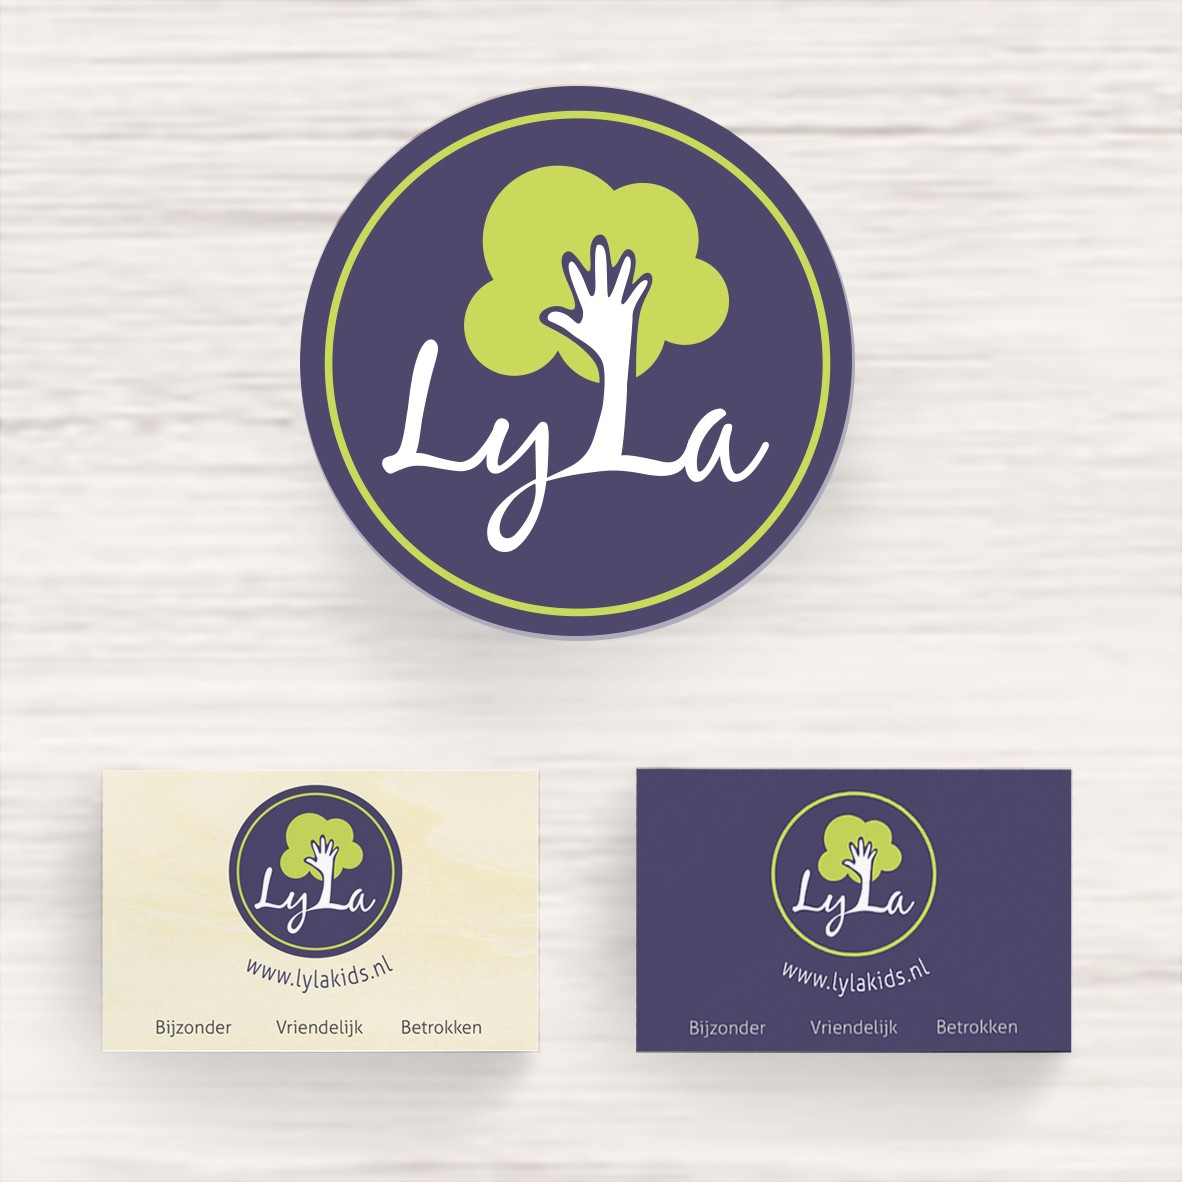 Lyla's logo and business card